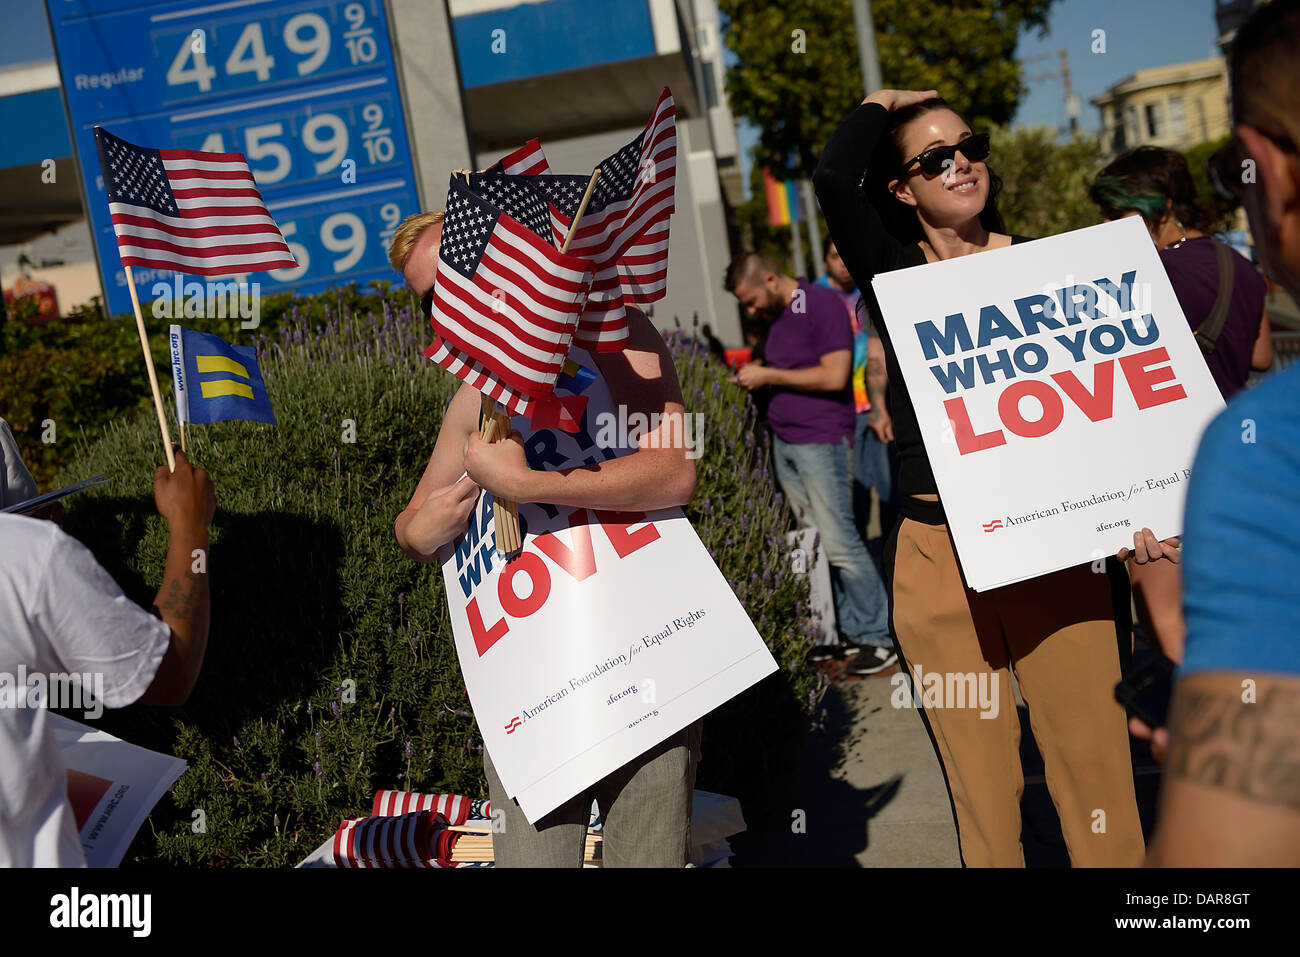 Gay Marriage Stock Photos & Gay Marriage Stock Images - Alamy